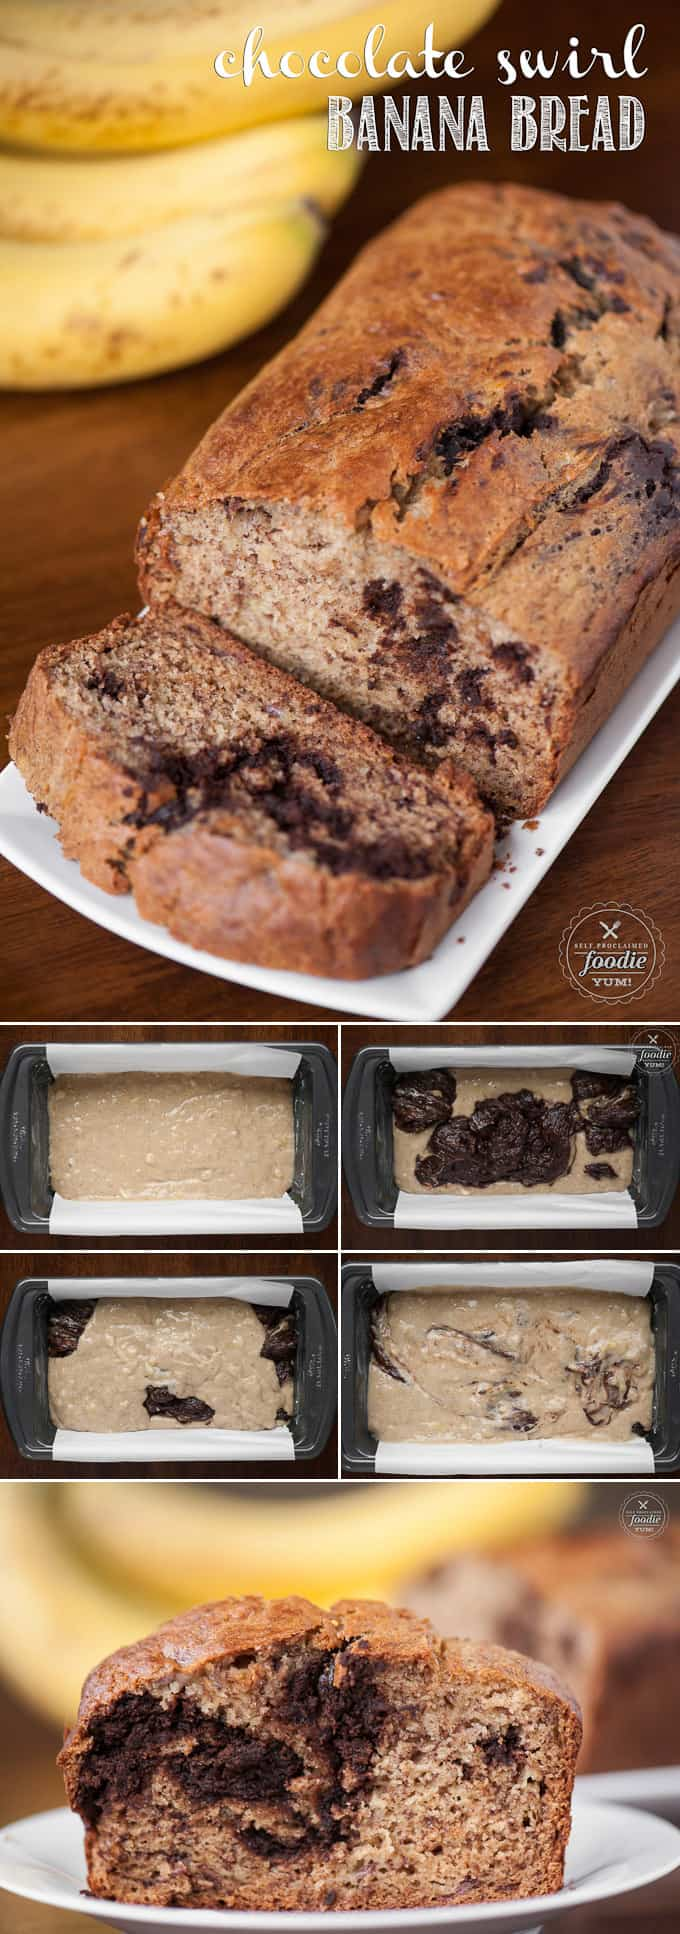 The next best thing to homemade banana bread is Chocolate Swirl Banana Bread made with melted chocolate chips. I love it with my morning coffee.